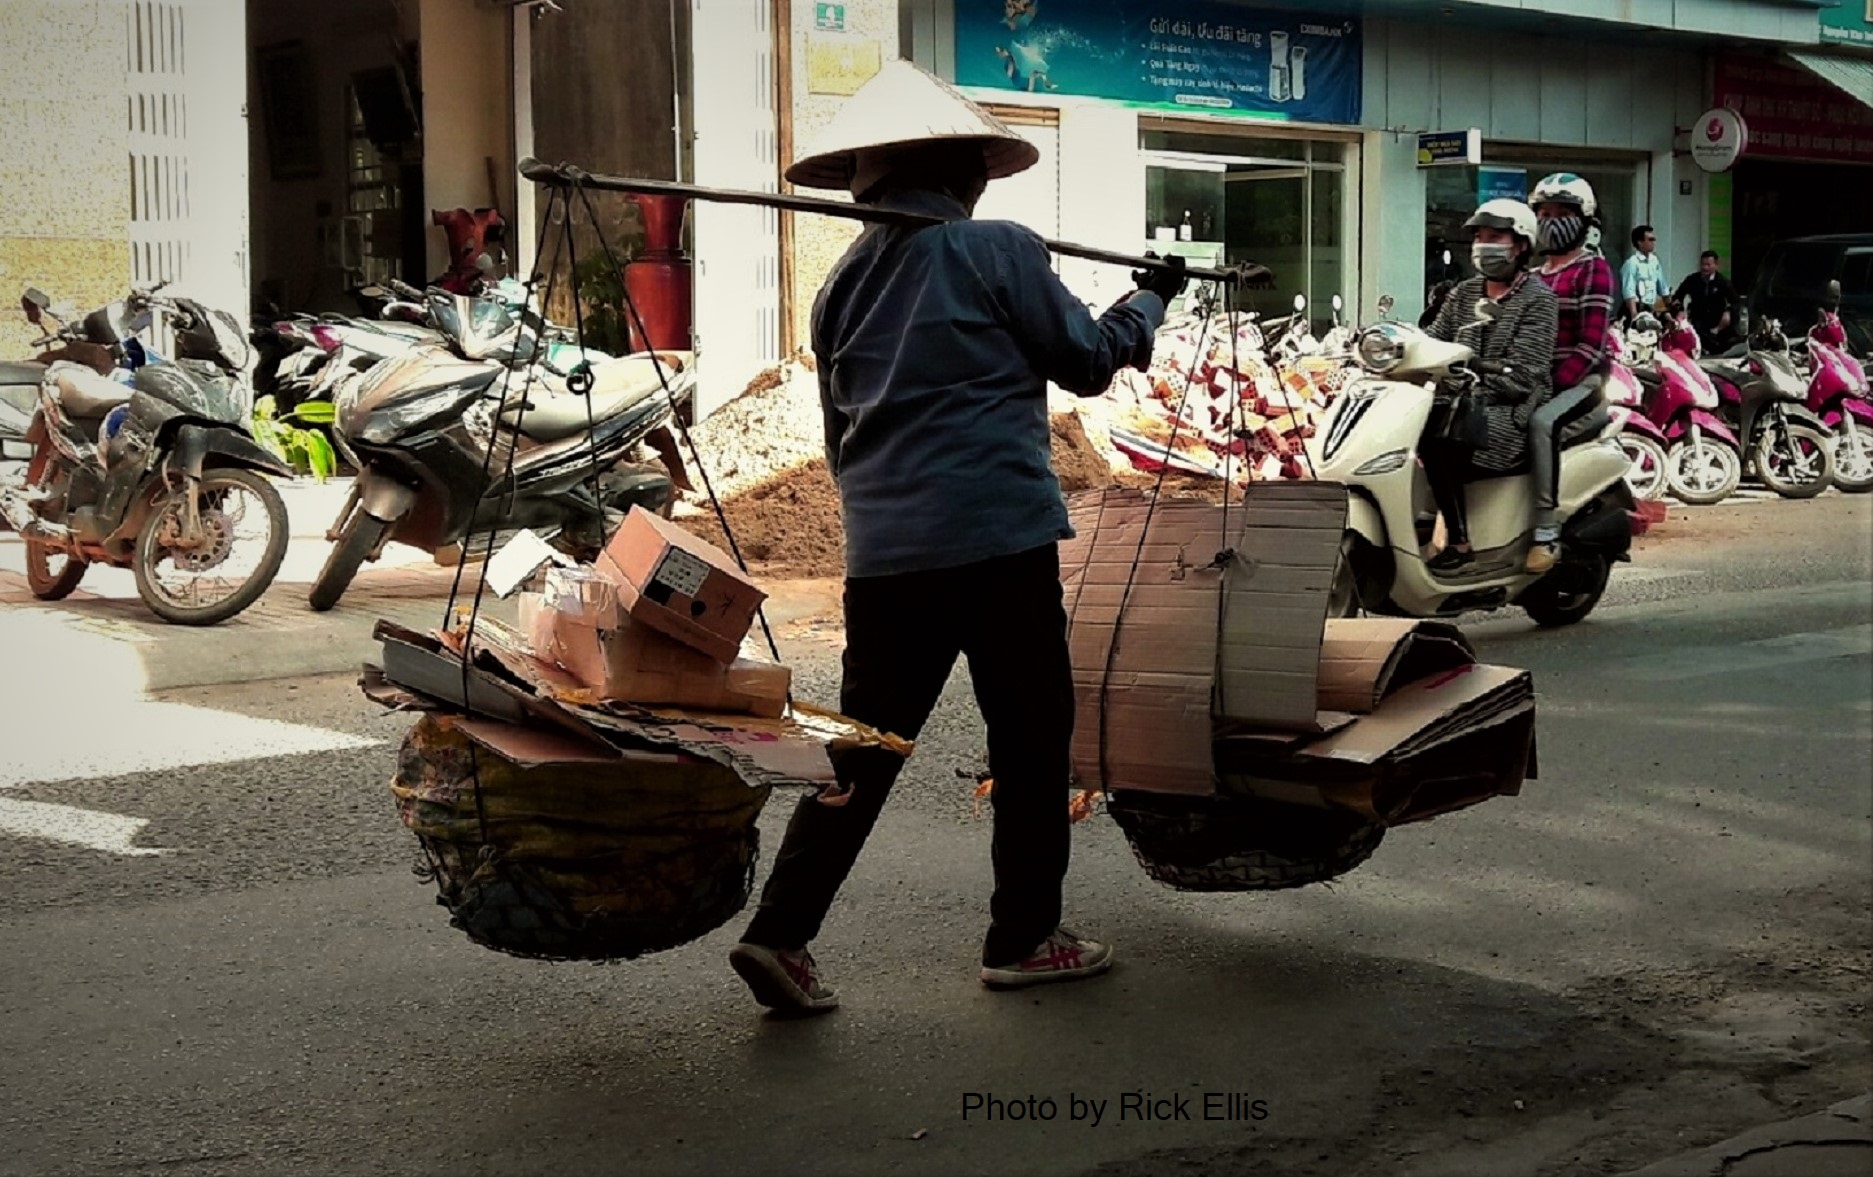 Don ganh (carrying pole) recycling lady in Da Lat